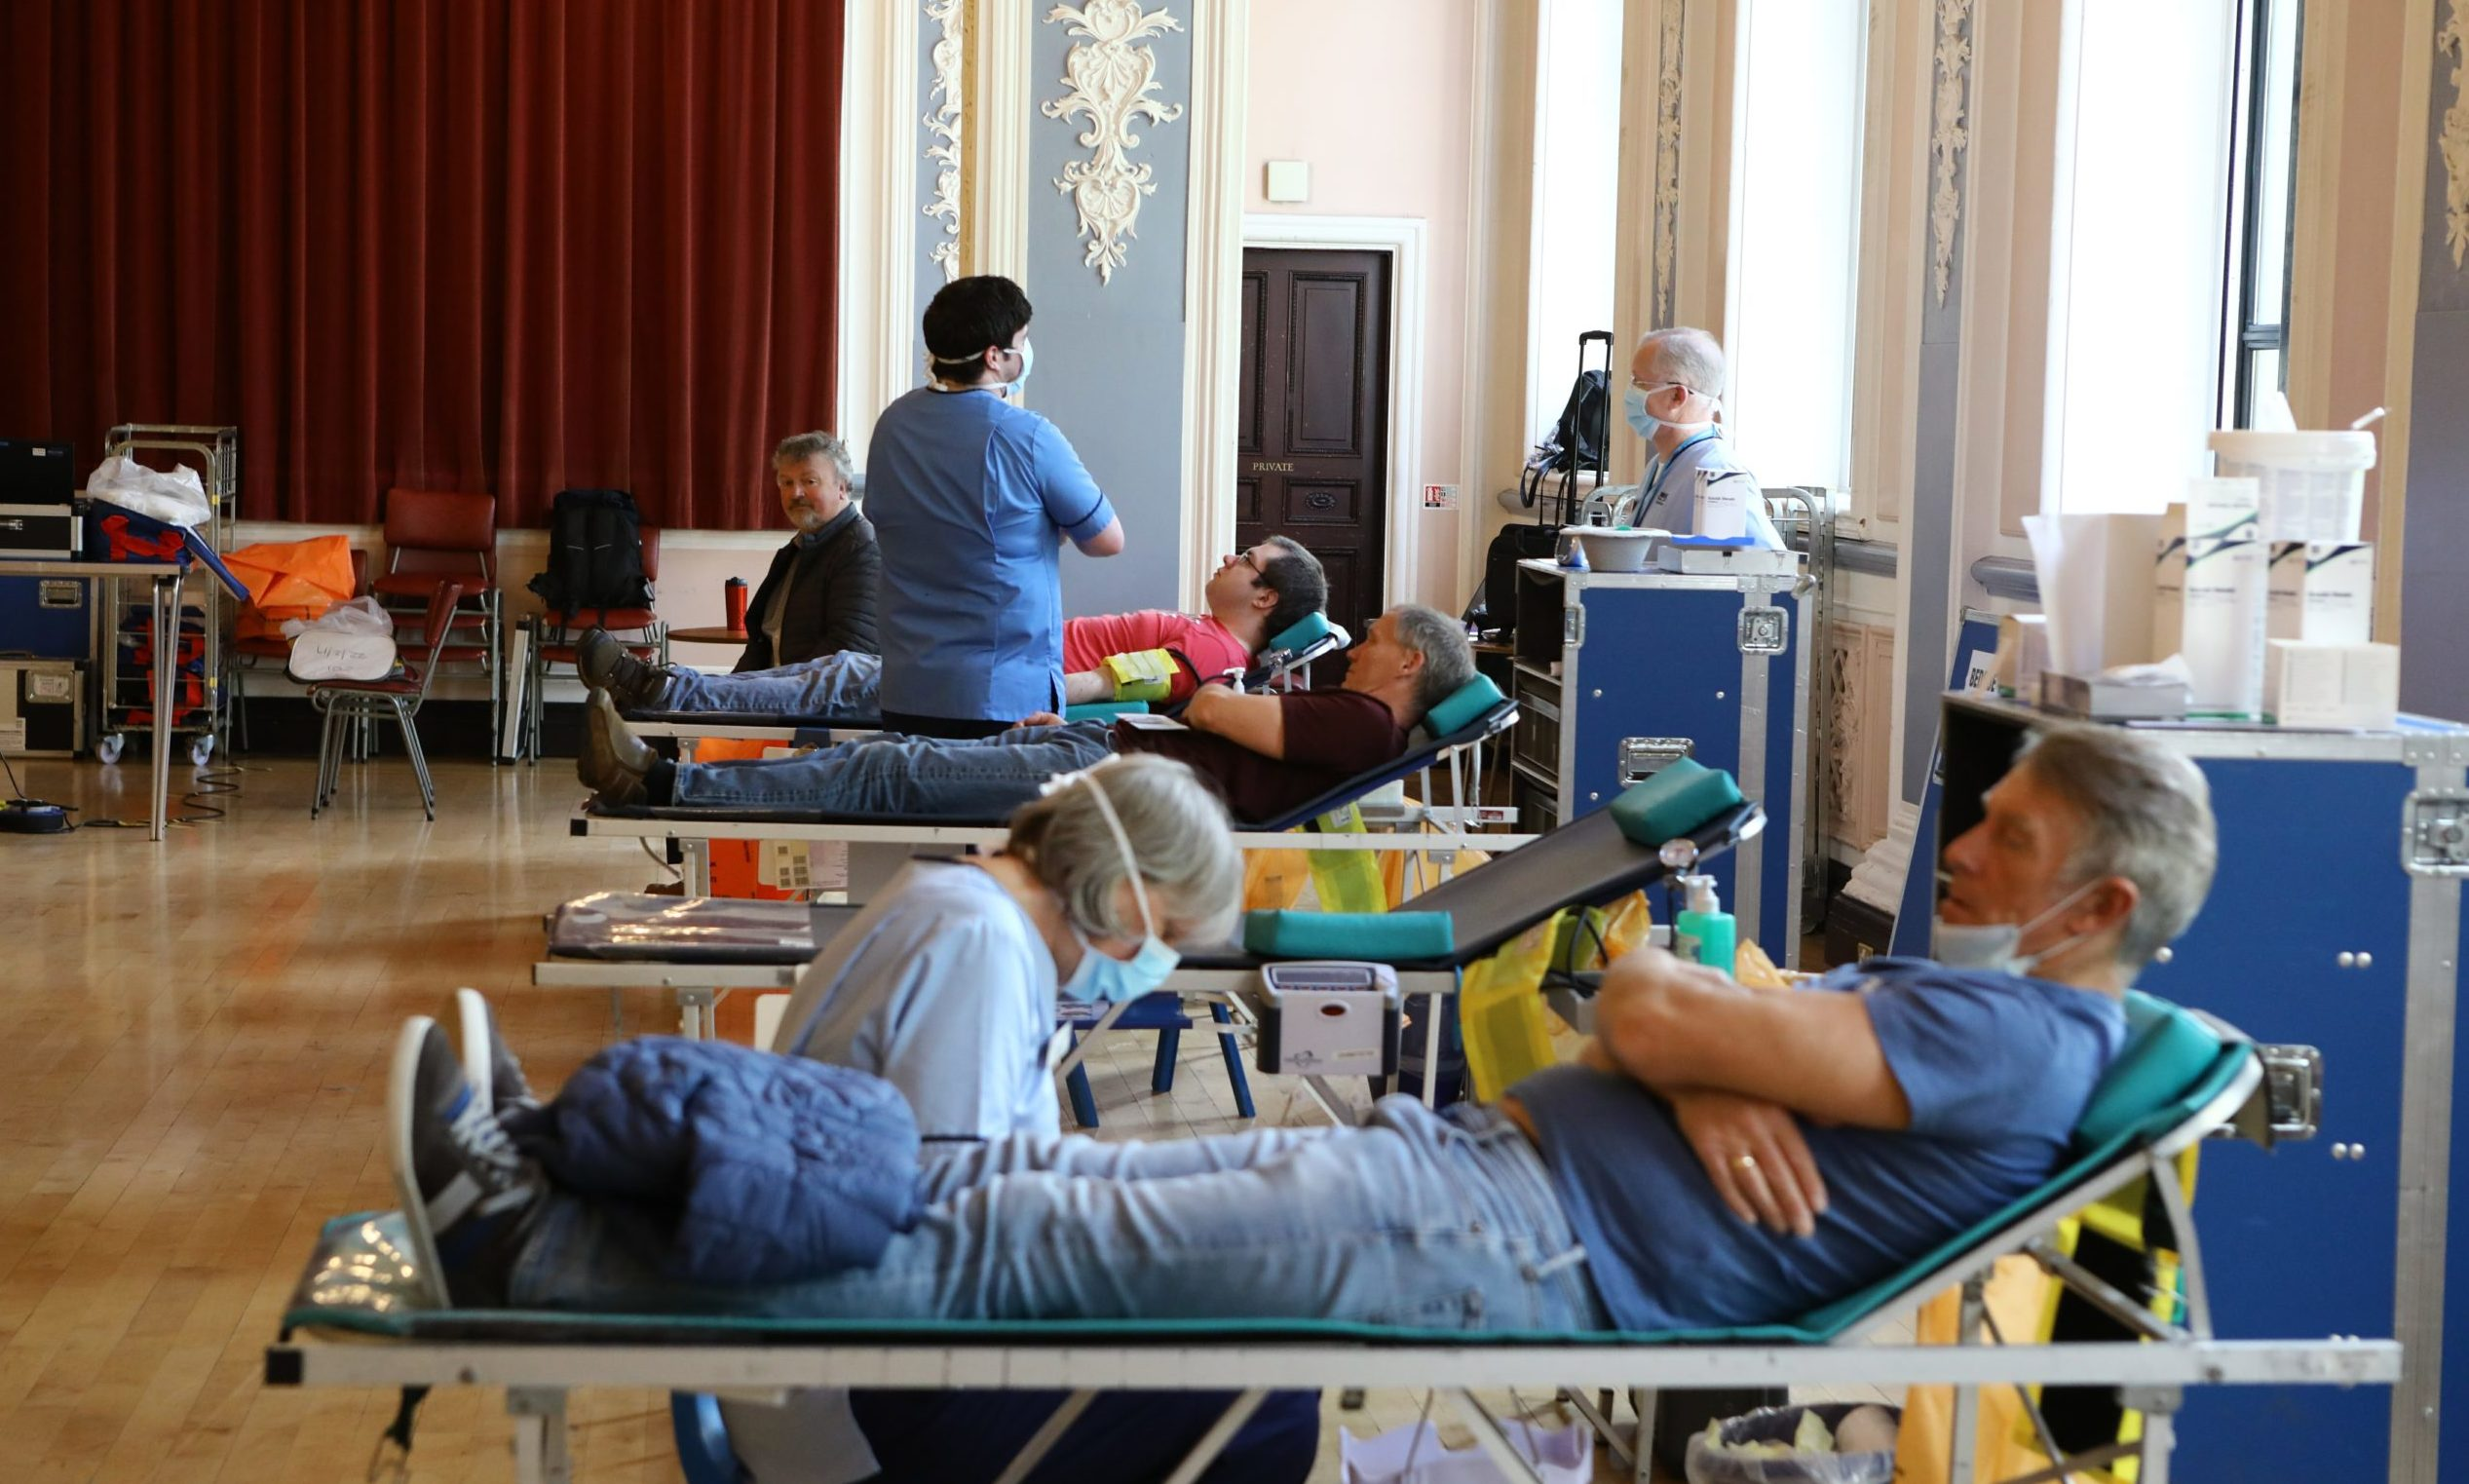 Donor sessions are taking place in Dundee's Marryat Hall.